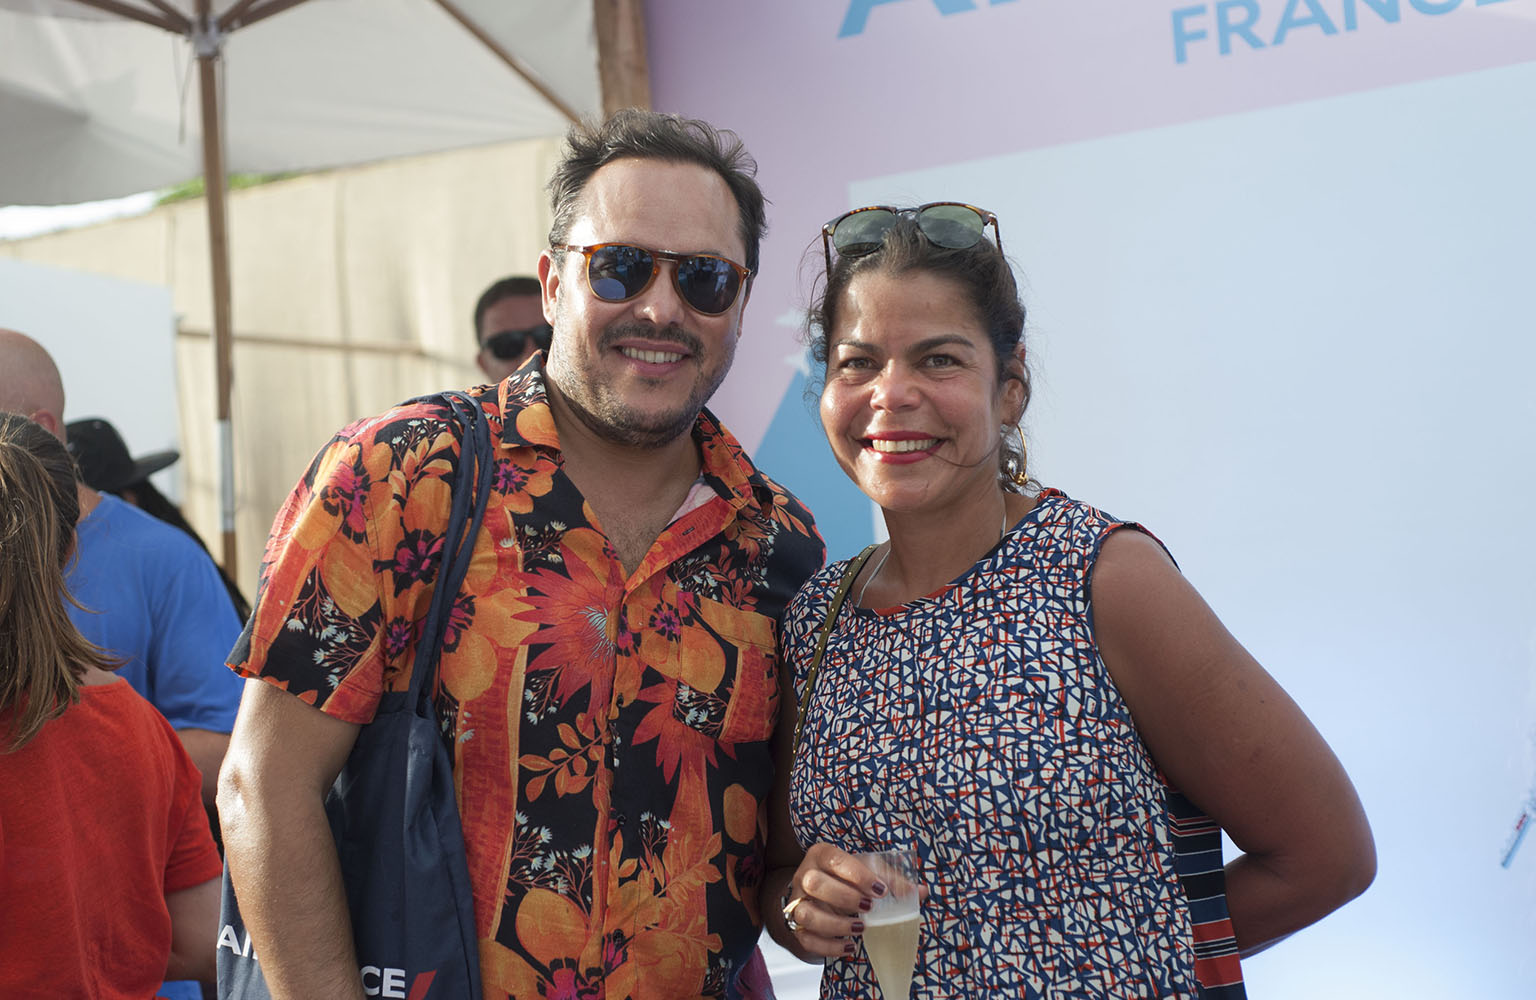 air_france_summer_hunter_festa_rio 261